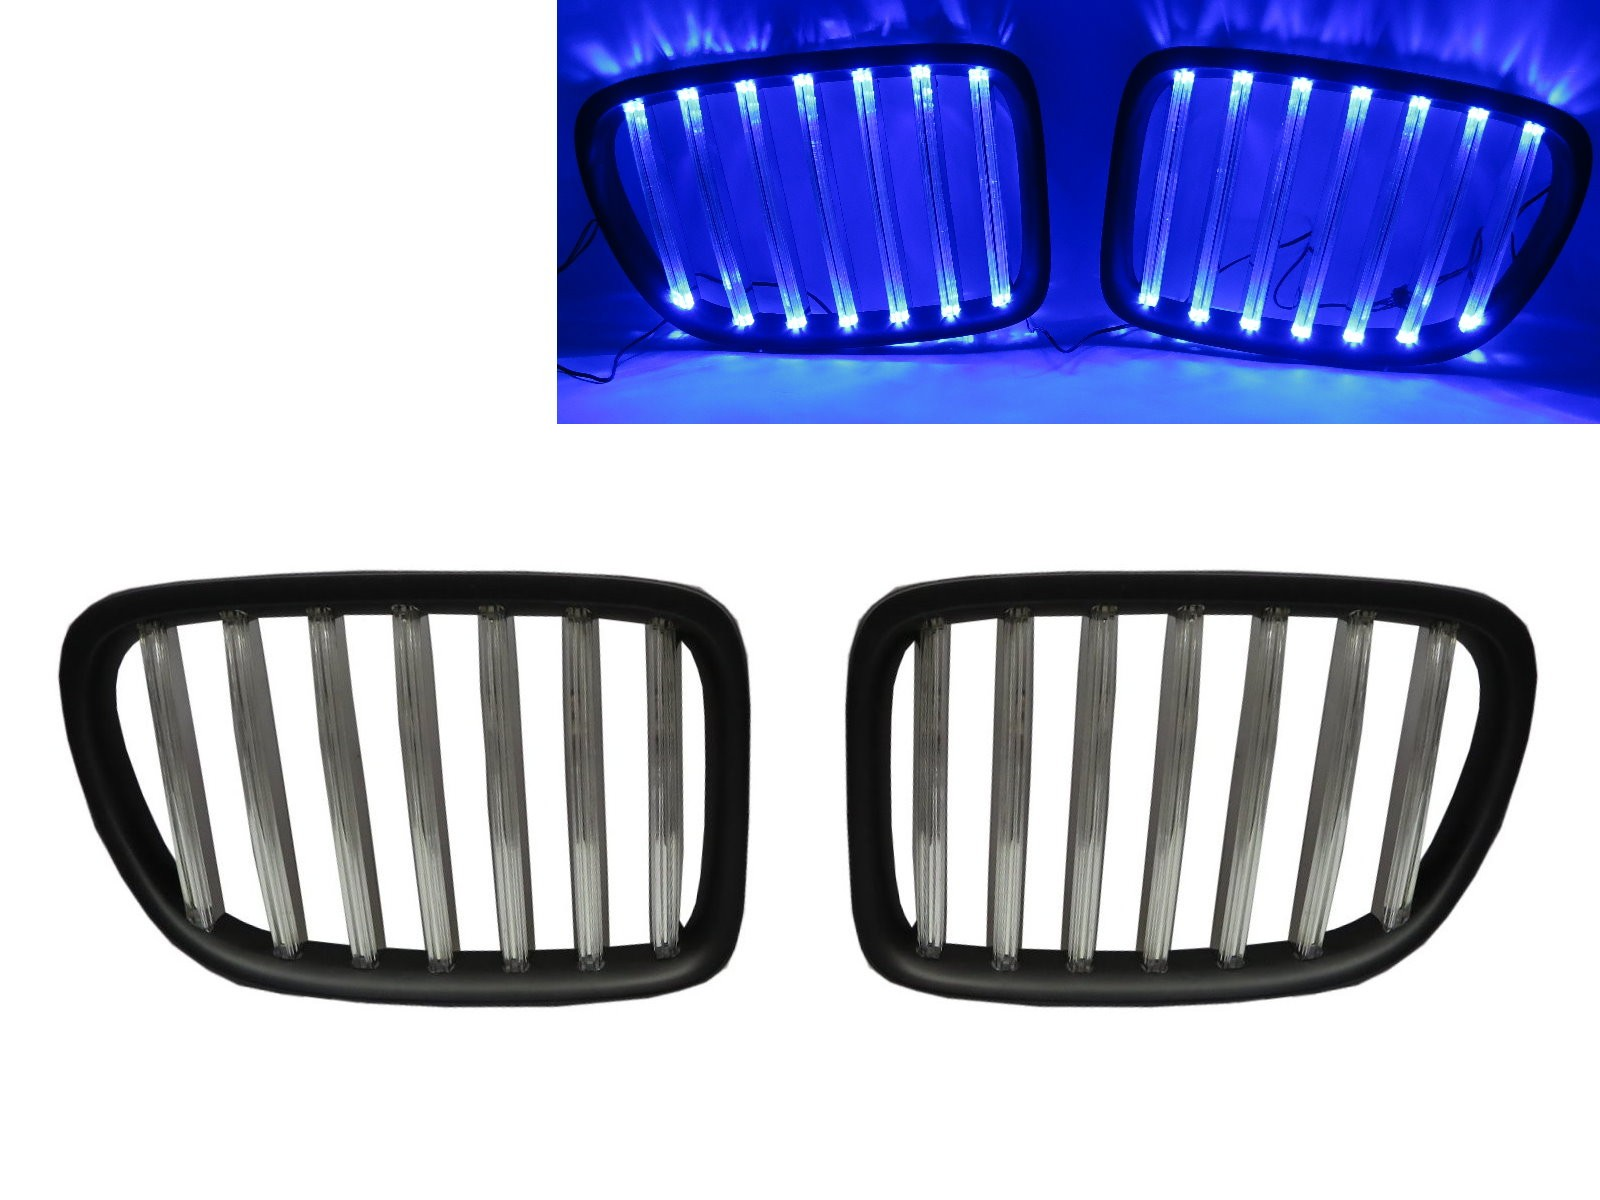 CrazyTheGod X1 E84 First generation 2009-2015 Wagon 5D LED BAR GRILLE/GRILL Chrome/Black for BMW